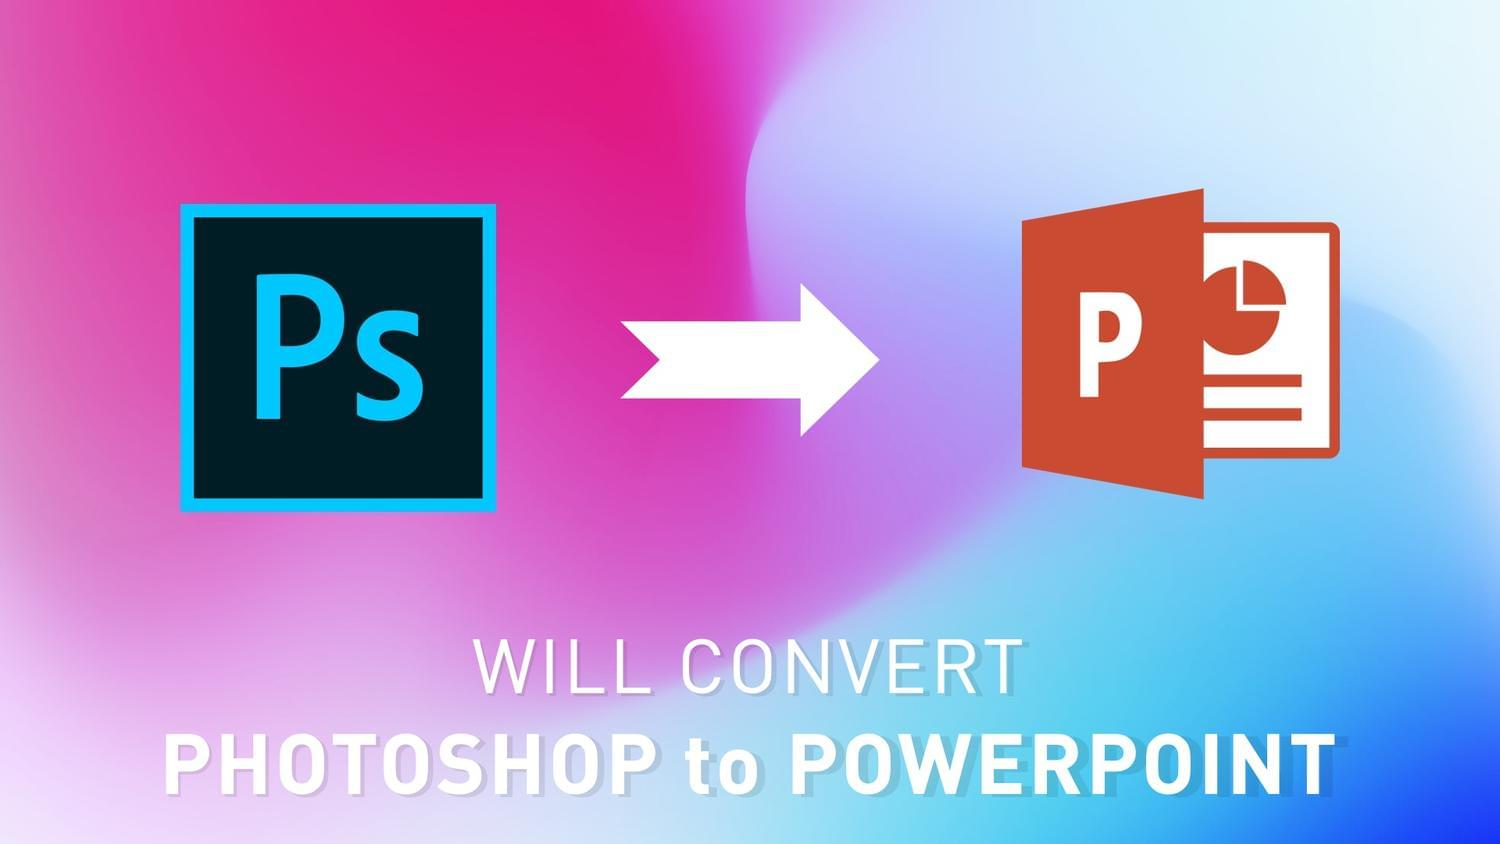 Convert Photoshop to Microsoft PowerPoint by arvaone - 115079